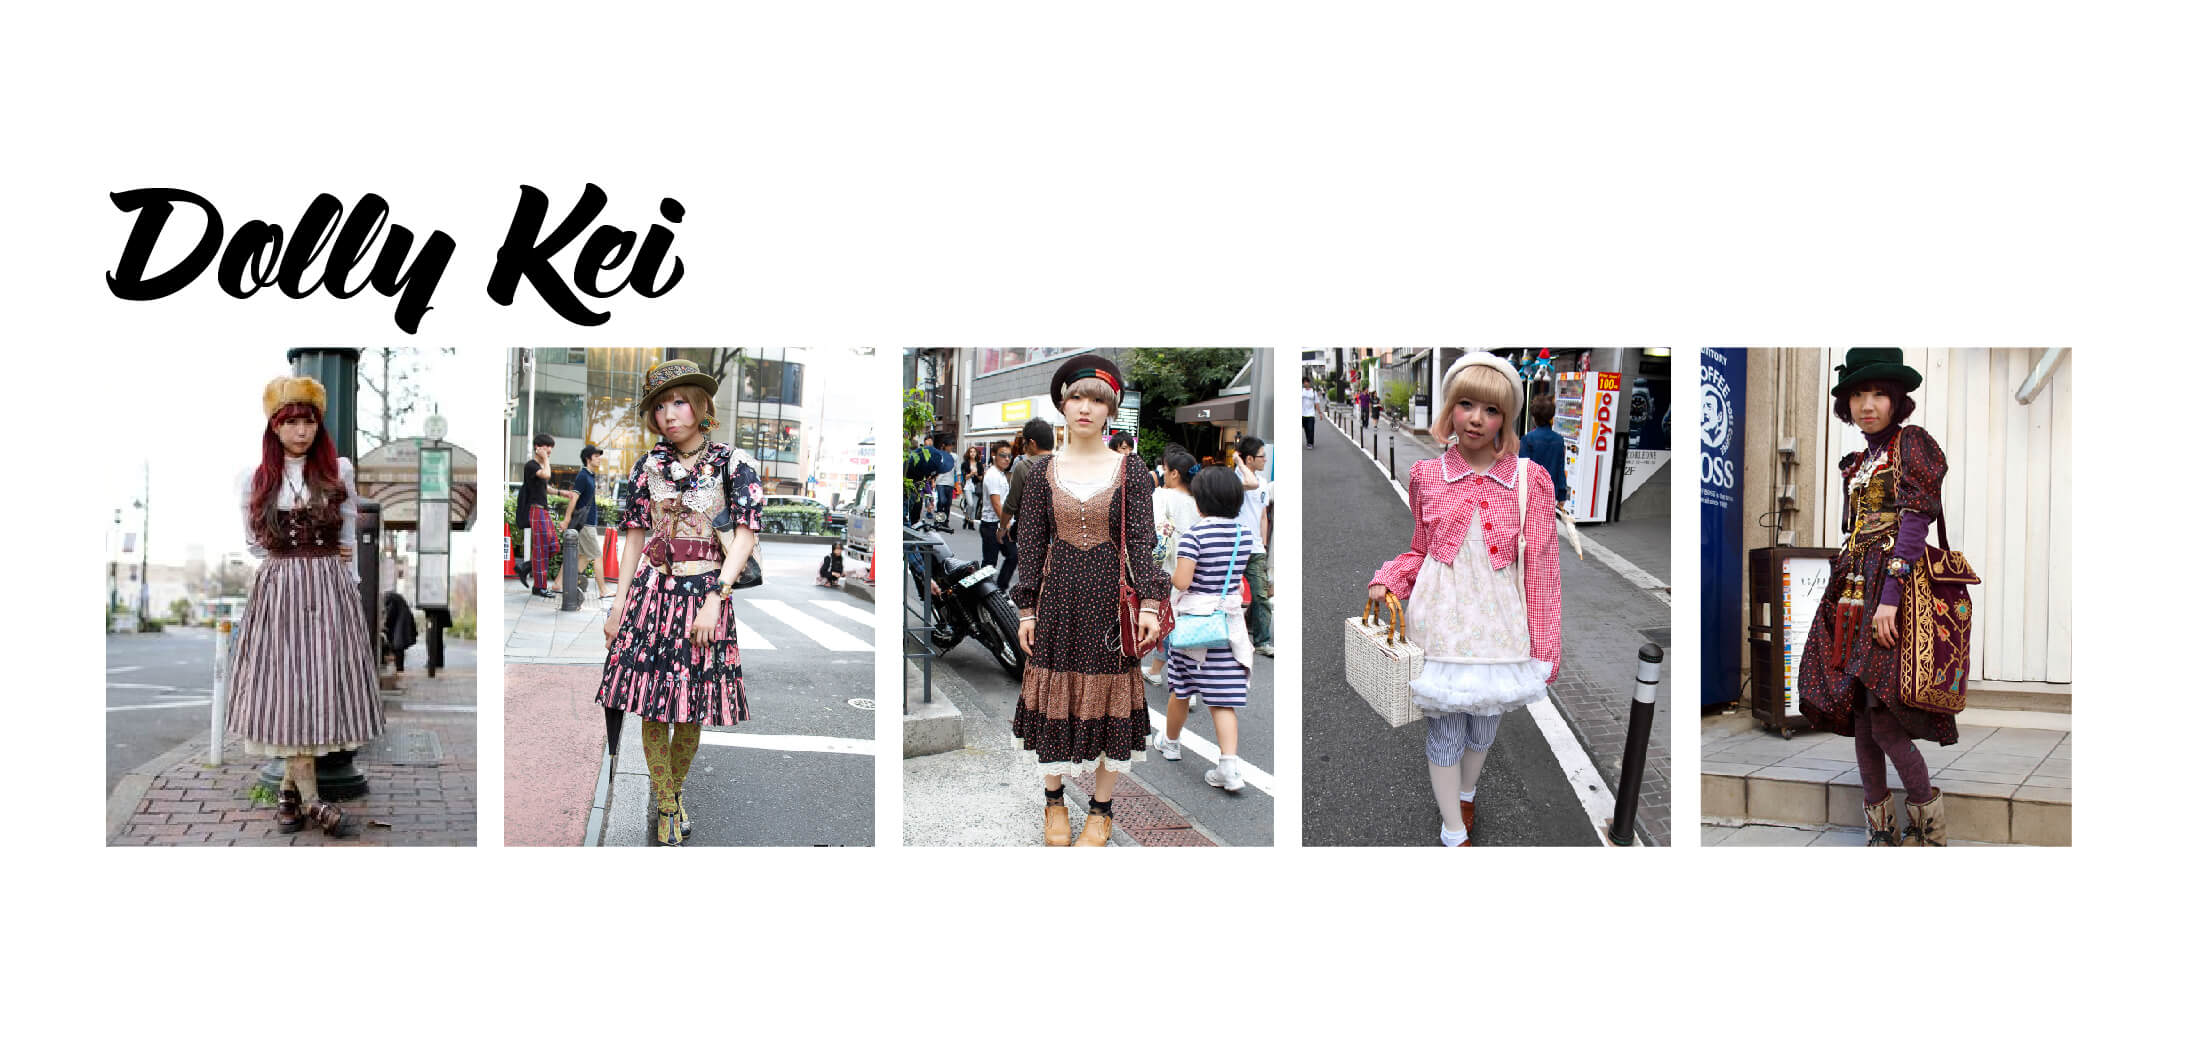 Examples of Dolly Kei Fashion (Japanese Fashion)